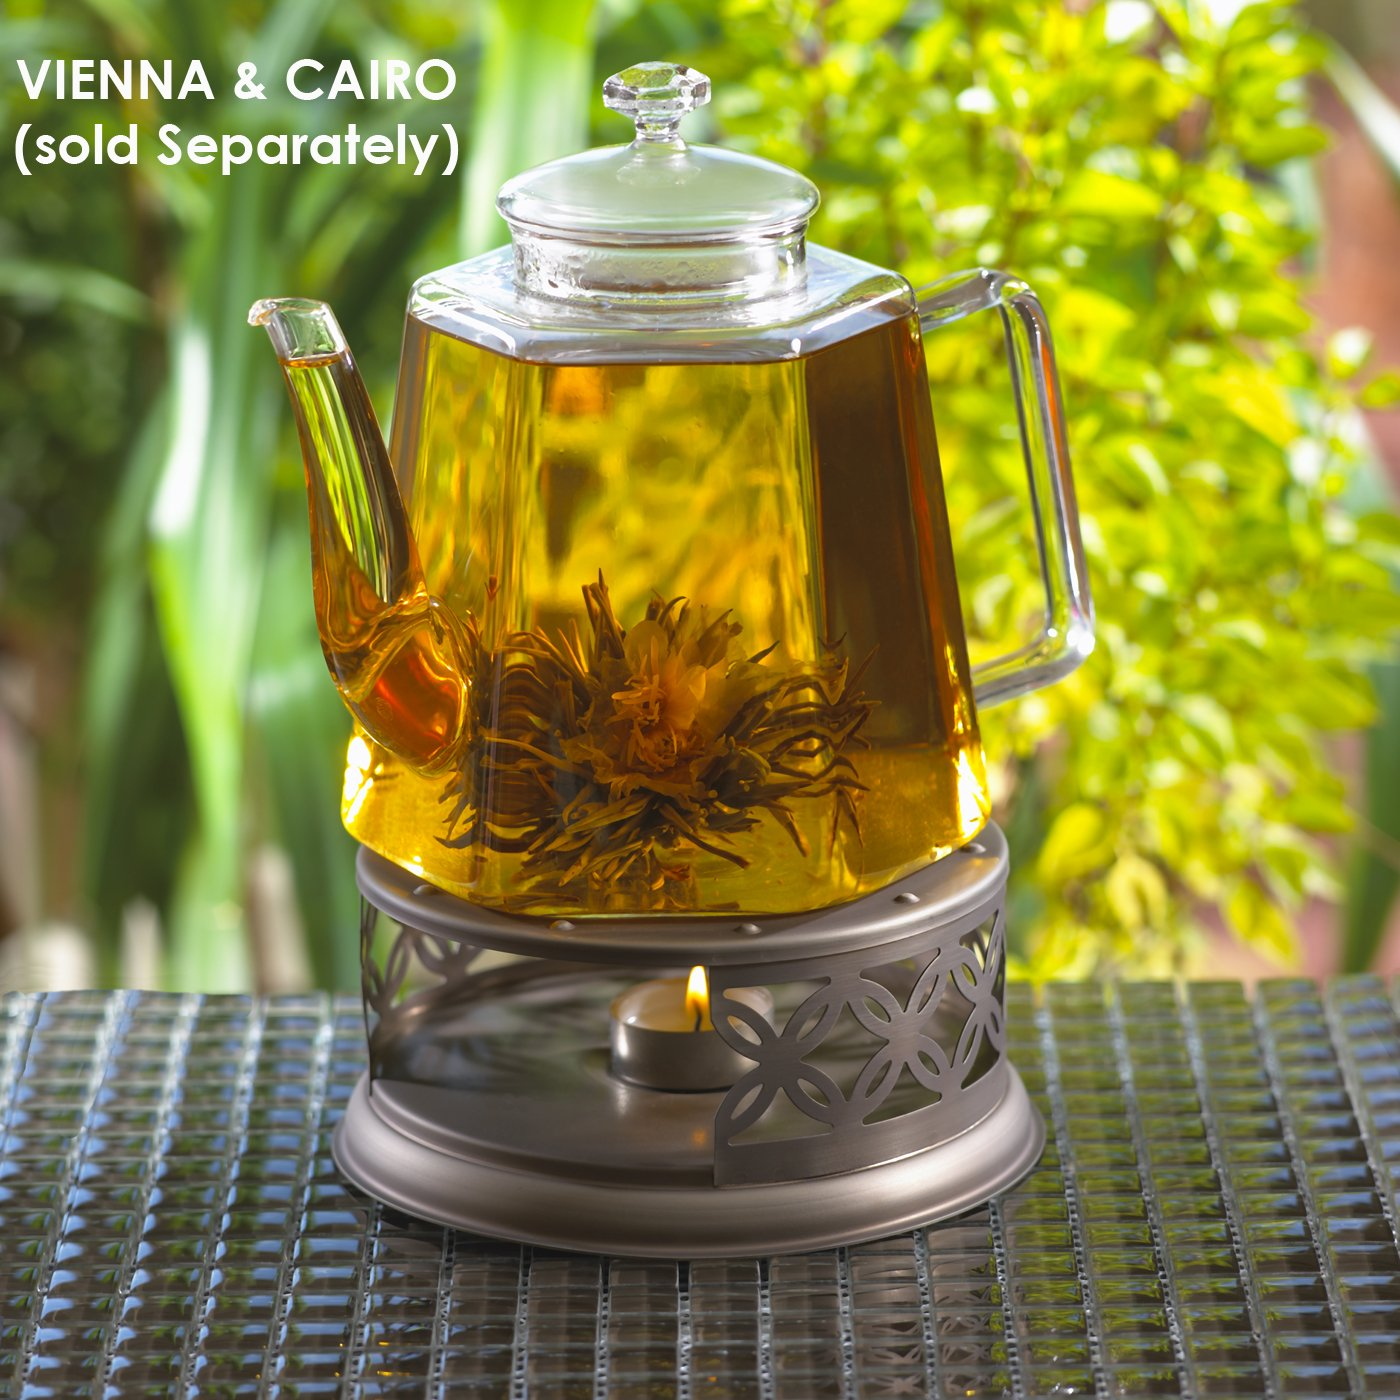 GROSCHE Cairo Premium Teapot Warmer with tea lite candle. For glass teapot and other heatproof dish warming use.